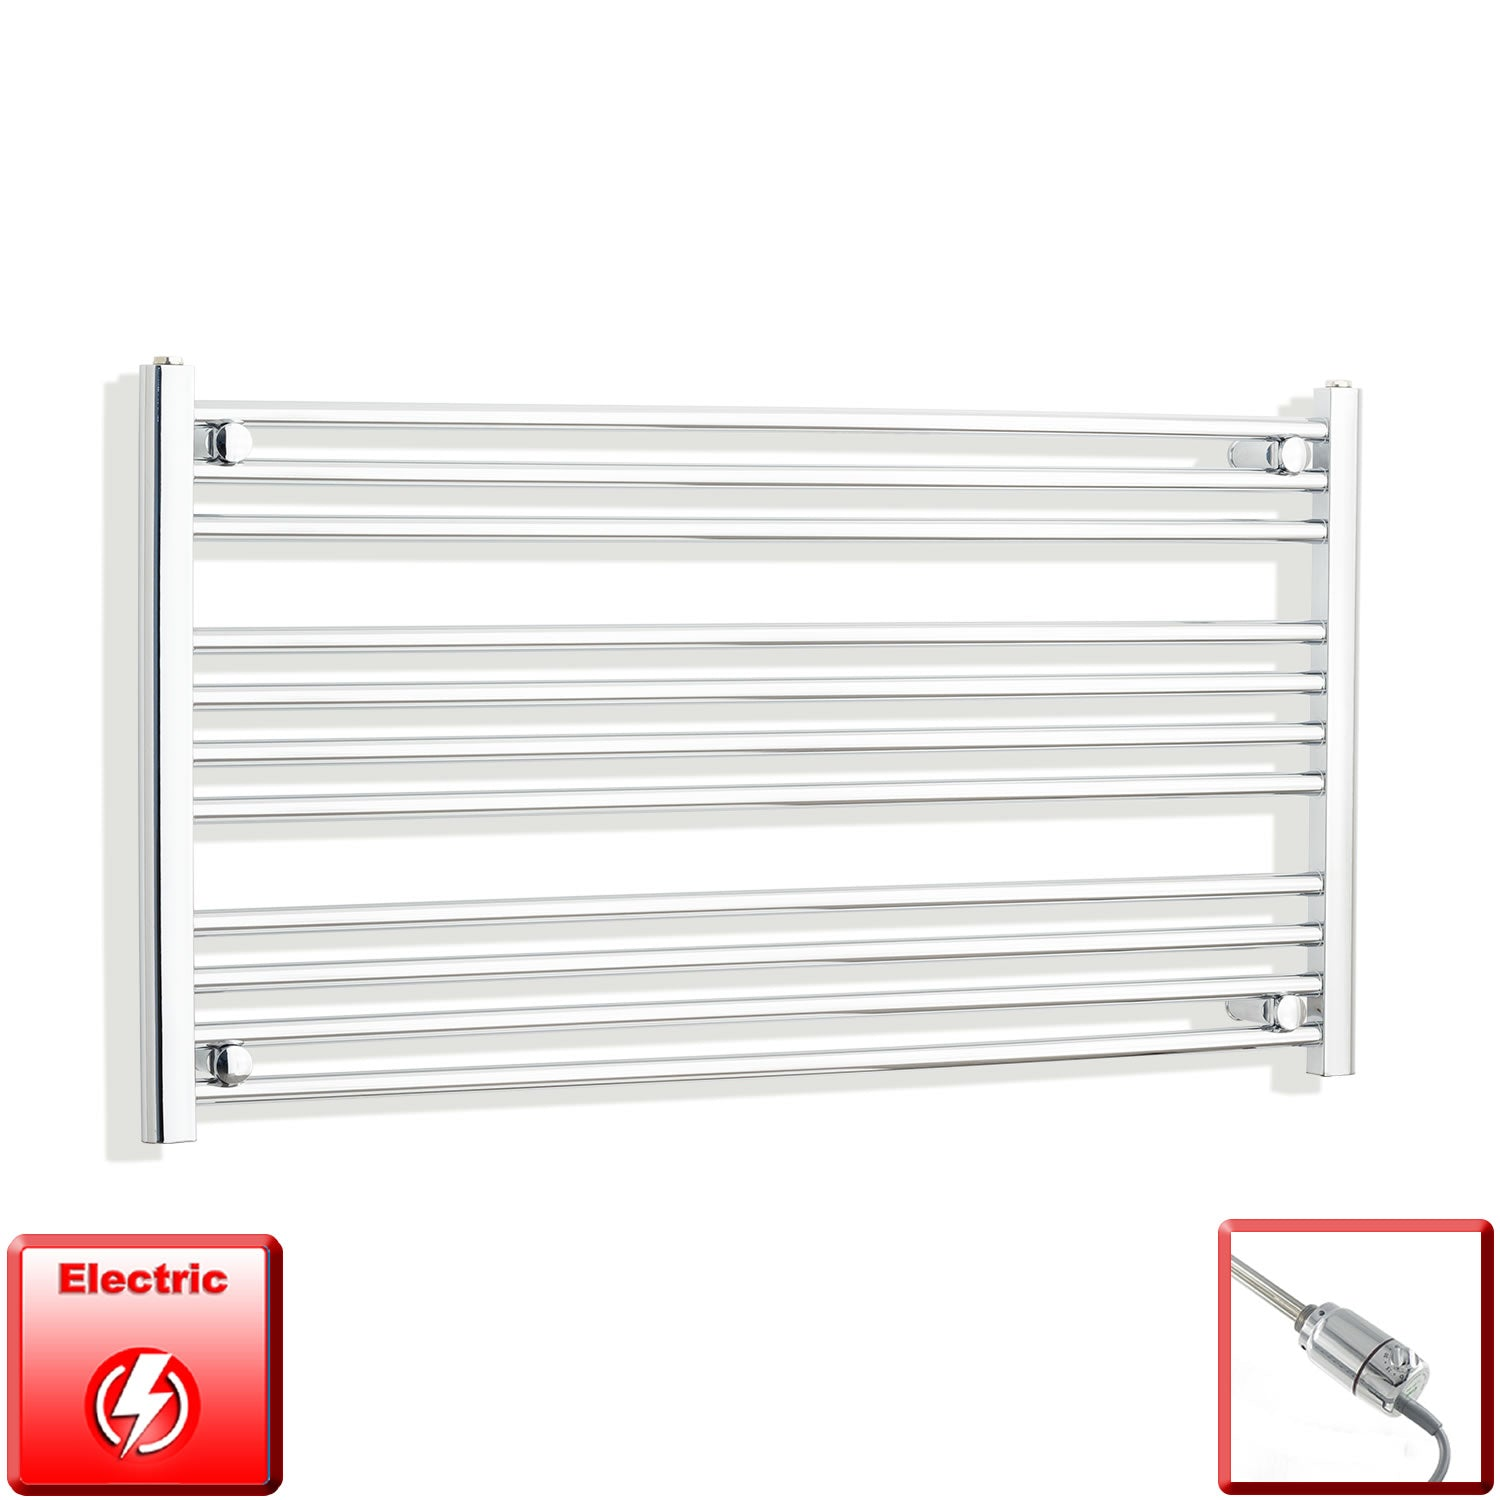 1300mm Wide 600mm High Pre-Filled Chrome Electric Towel Rail Radiator With Thermostatic GT Element